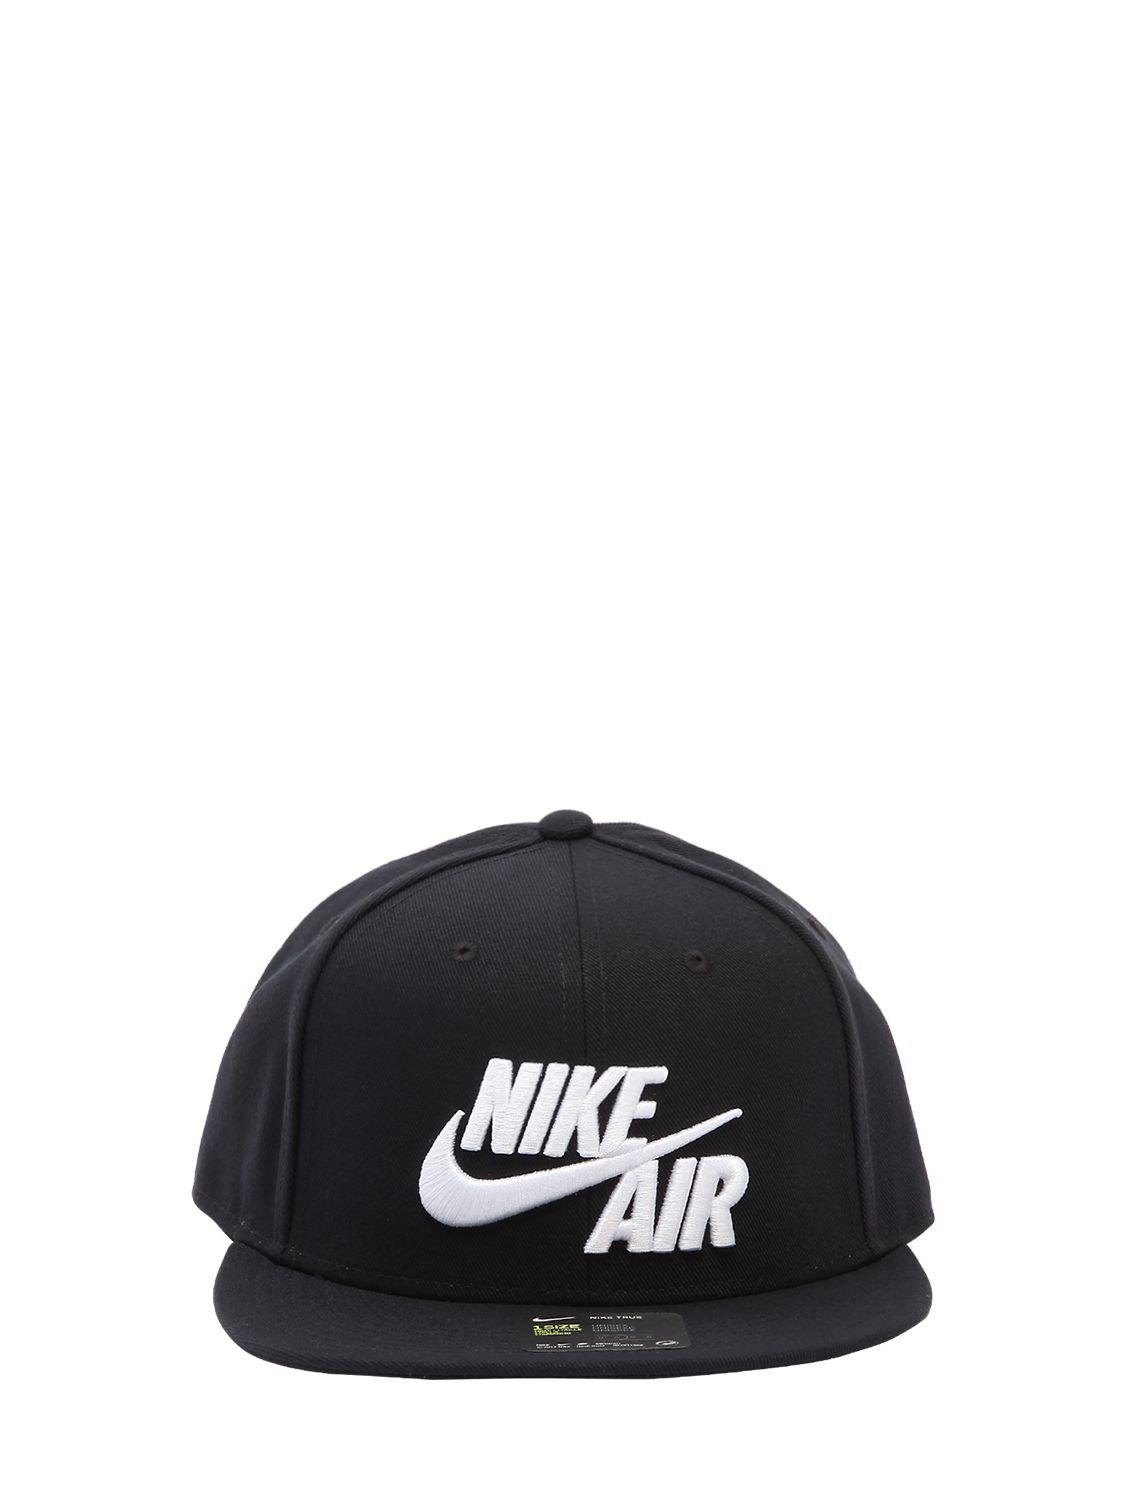 Lyst - Nike Air True Baseball Hat in Black 1e19525a9454